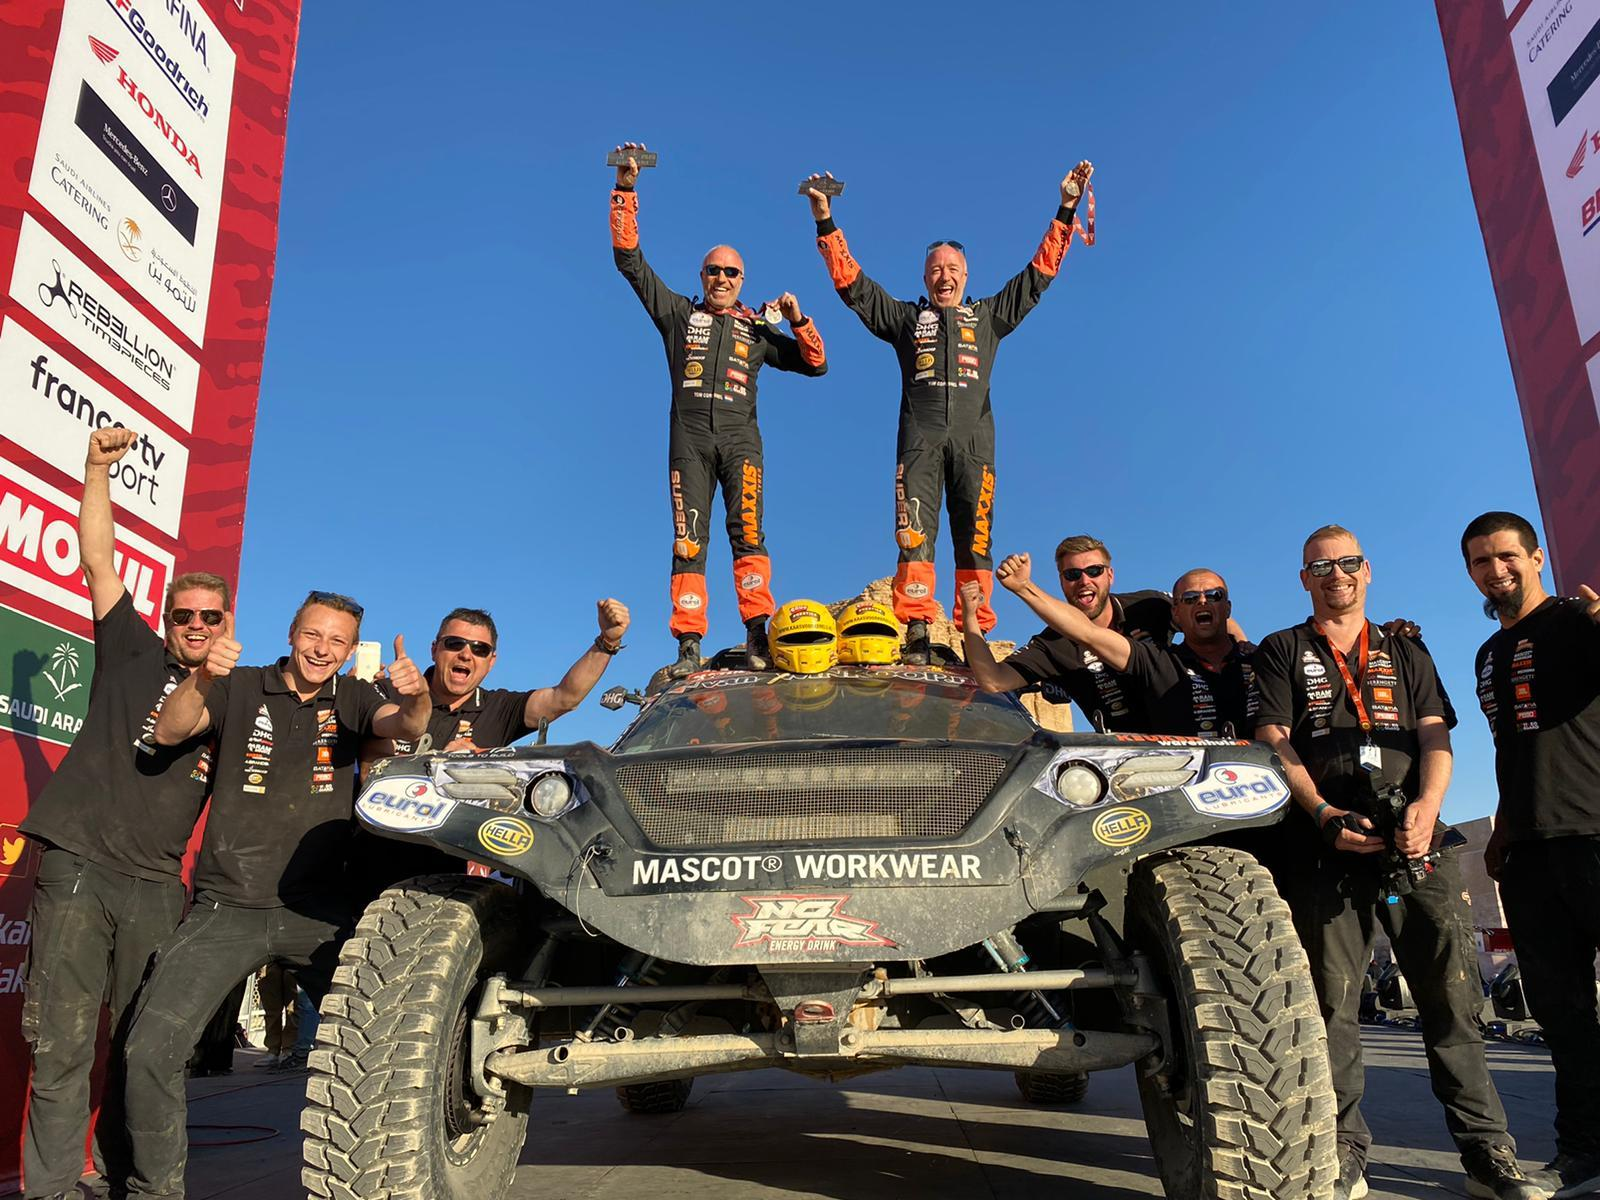 Twin-tastic! WTCR's Tom Coronel and brother Tim score Dakar best